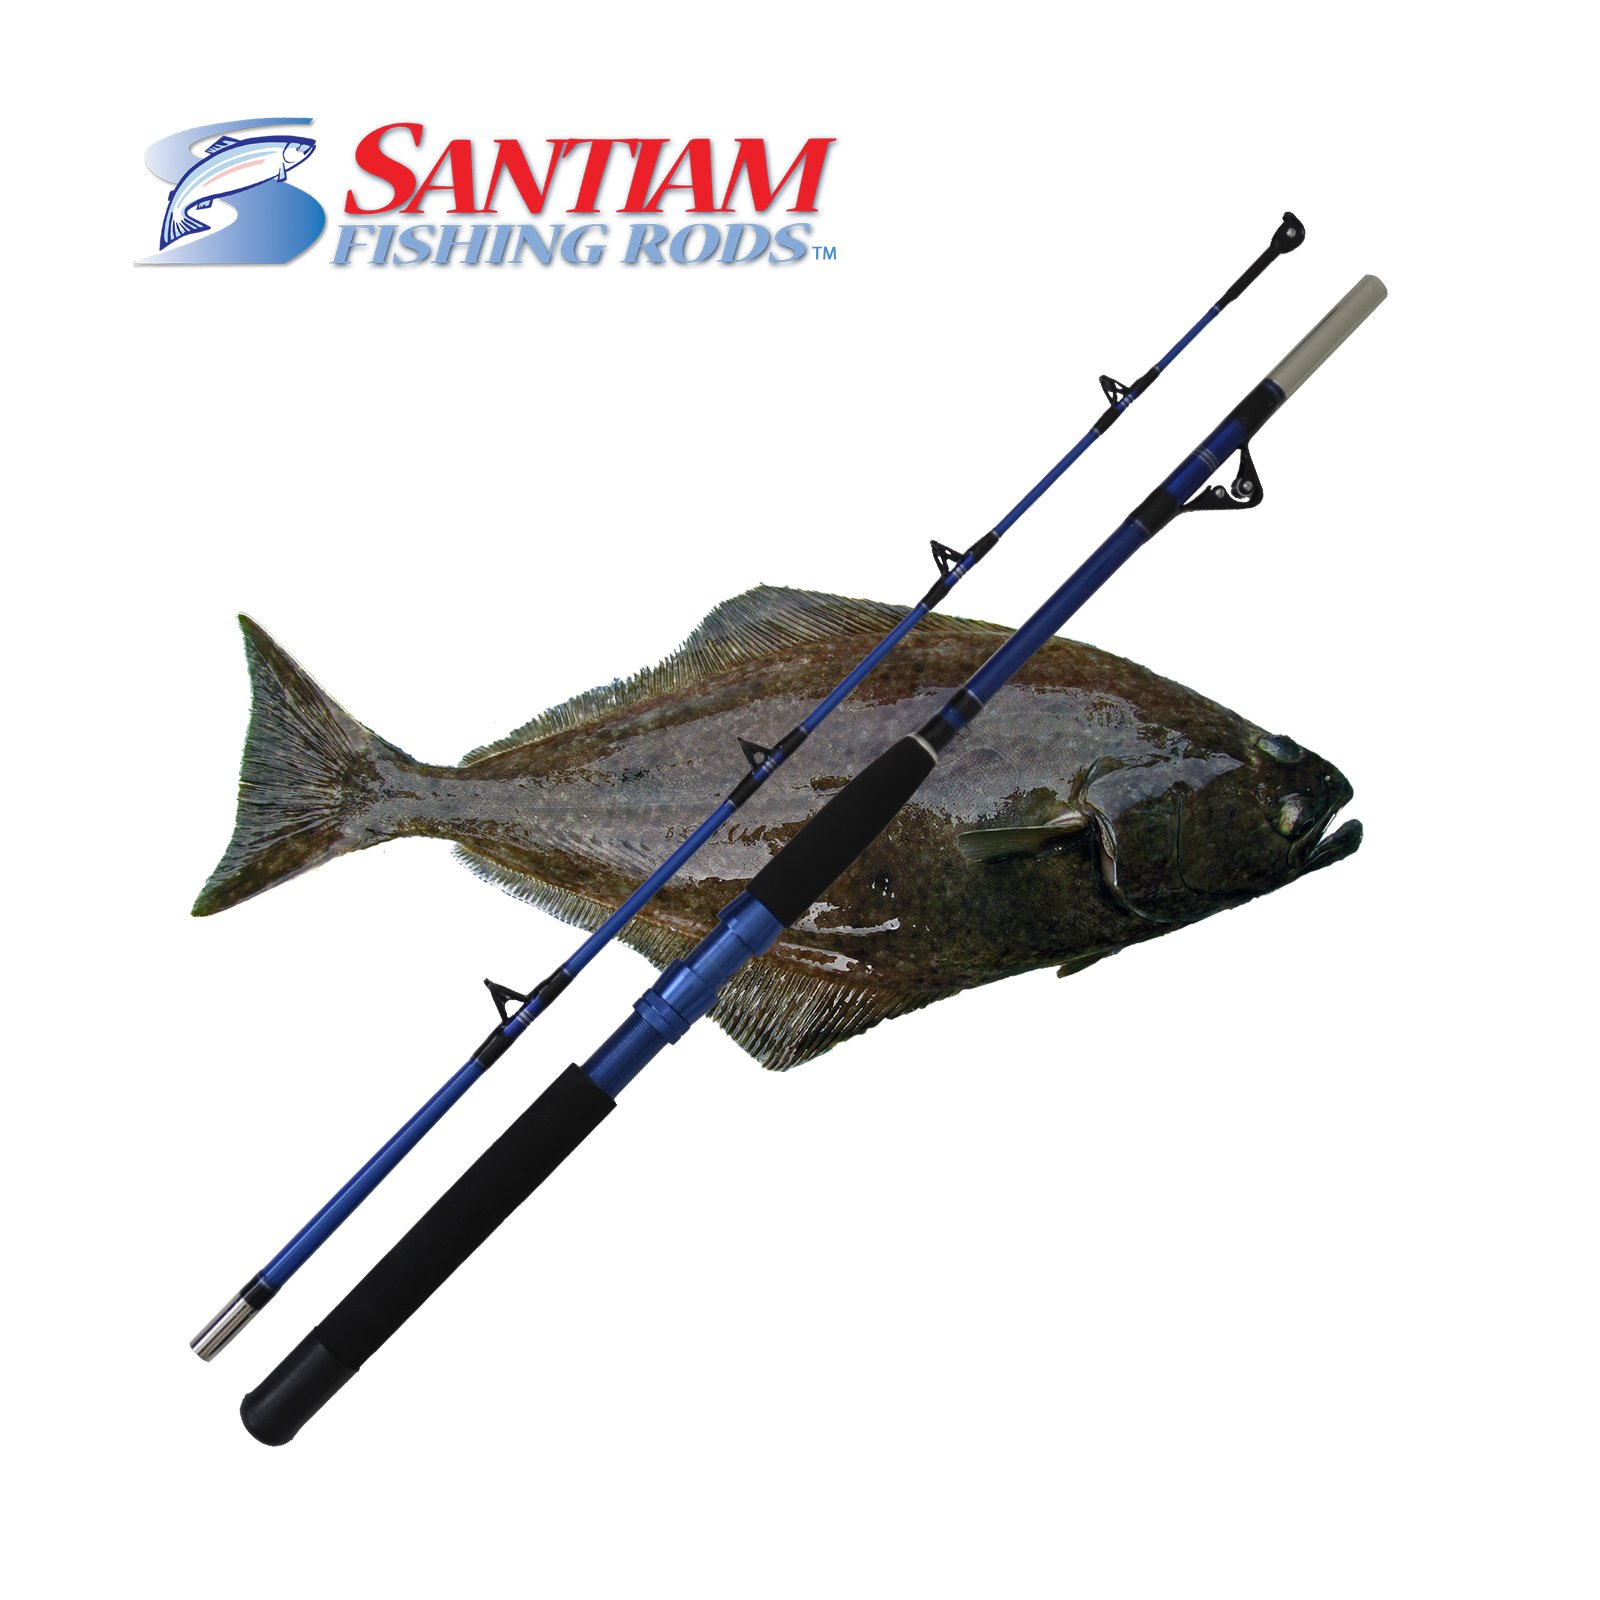 Santiam Fishing Rods Travel Rod 2 Piece 6'0'' 80-120lb Halibut/Tuna/Saltwater Rod